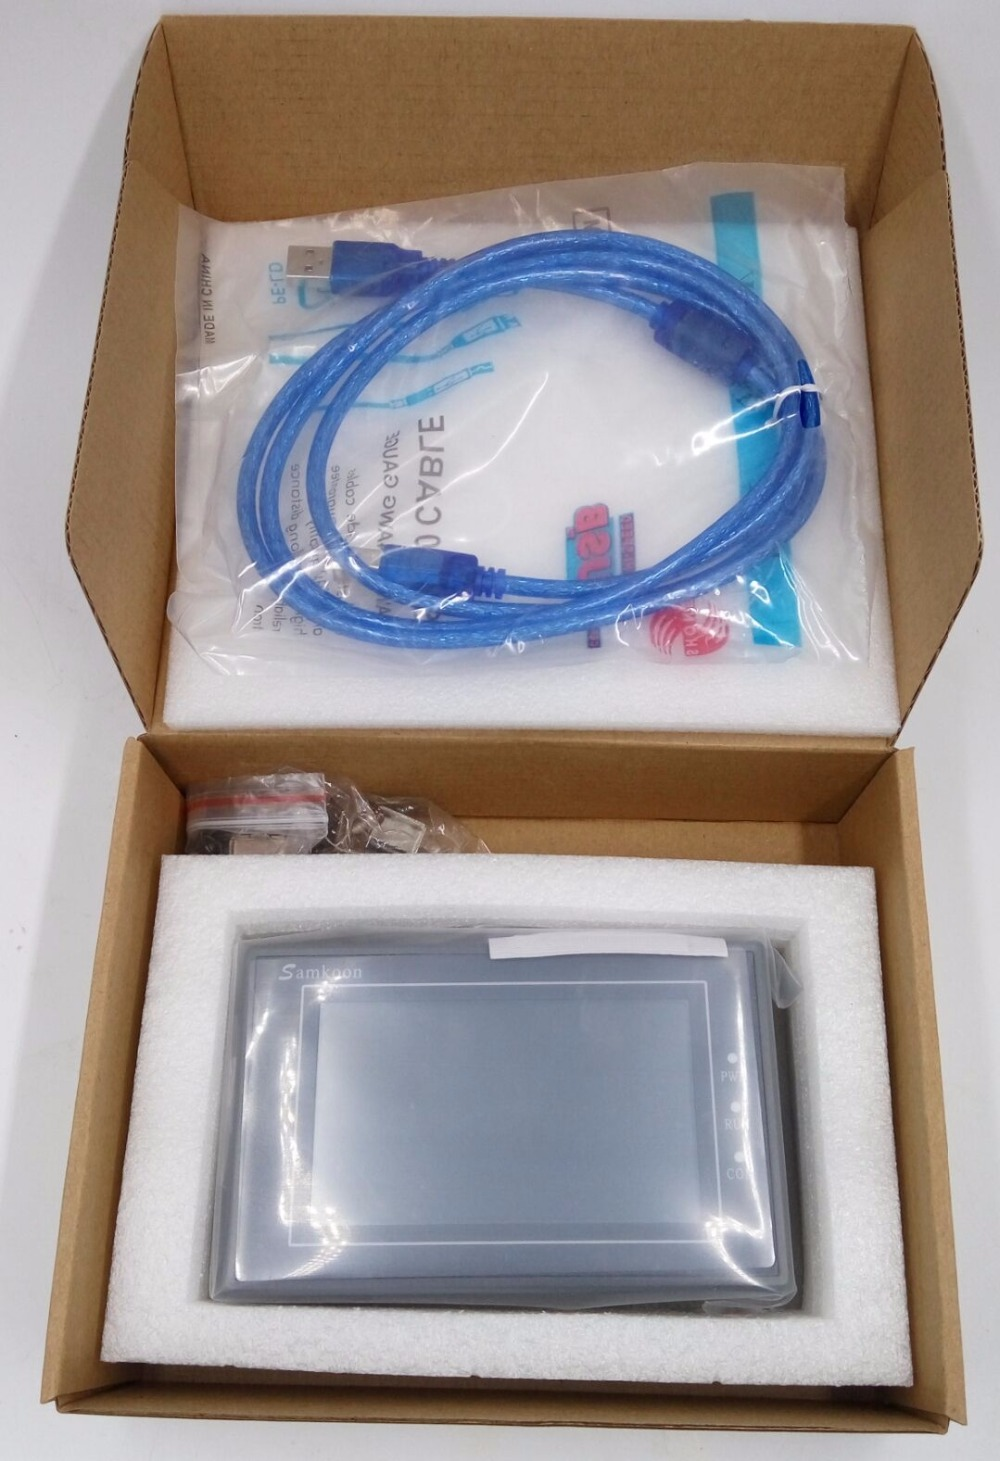 3.5 inch HMI Touch Screen Samkoon SA-035F with Programming Cable and Software samkoon sa 5 7a 5 7 inch touch screen hmi 2com new programming cable